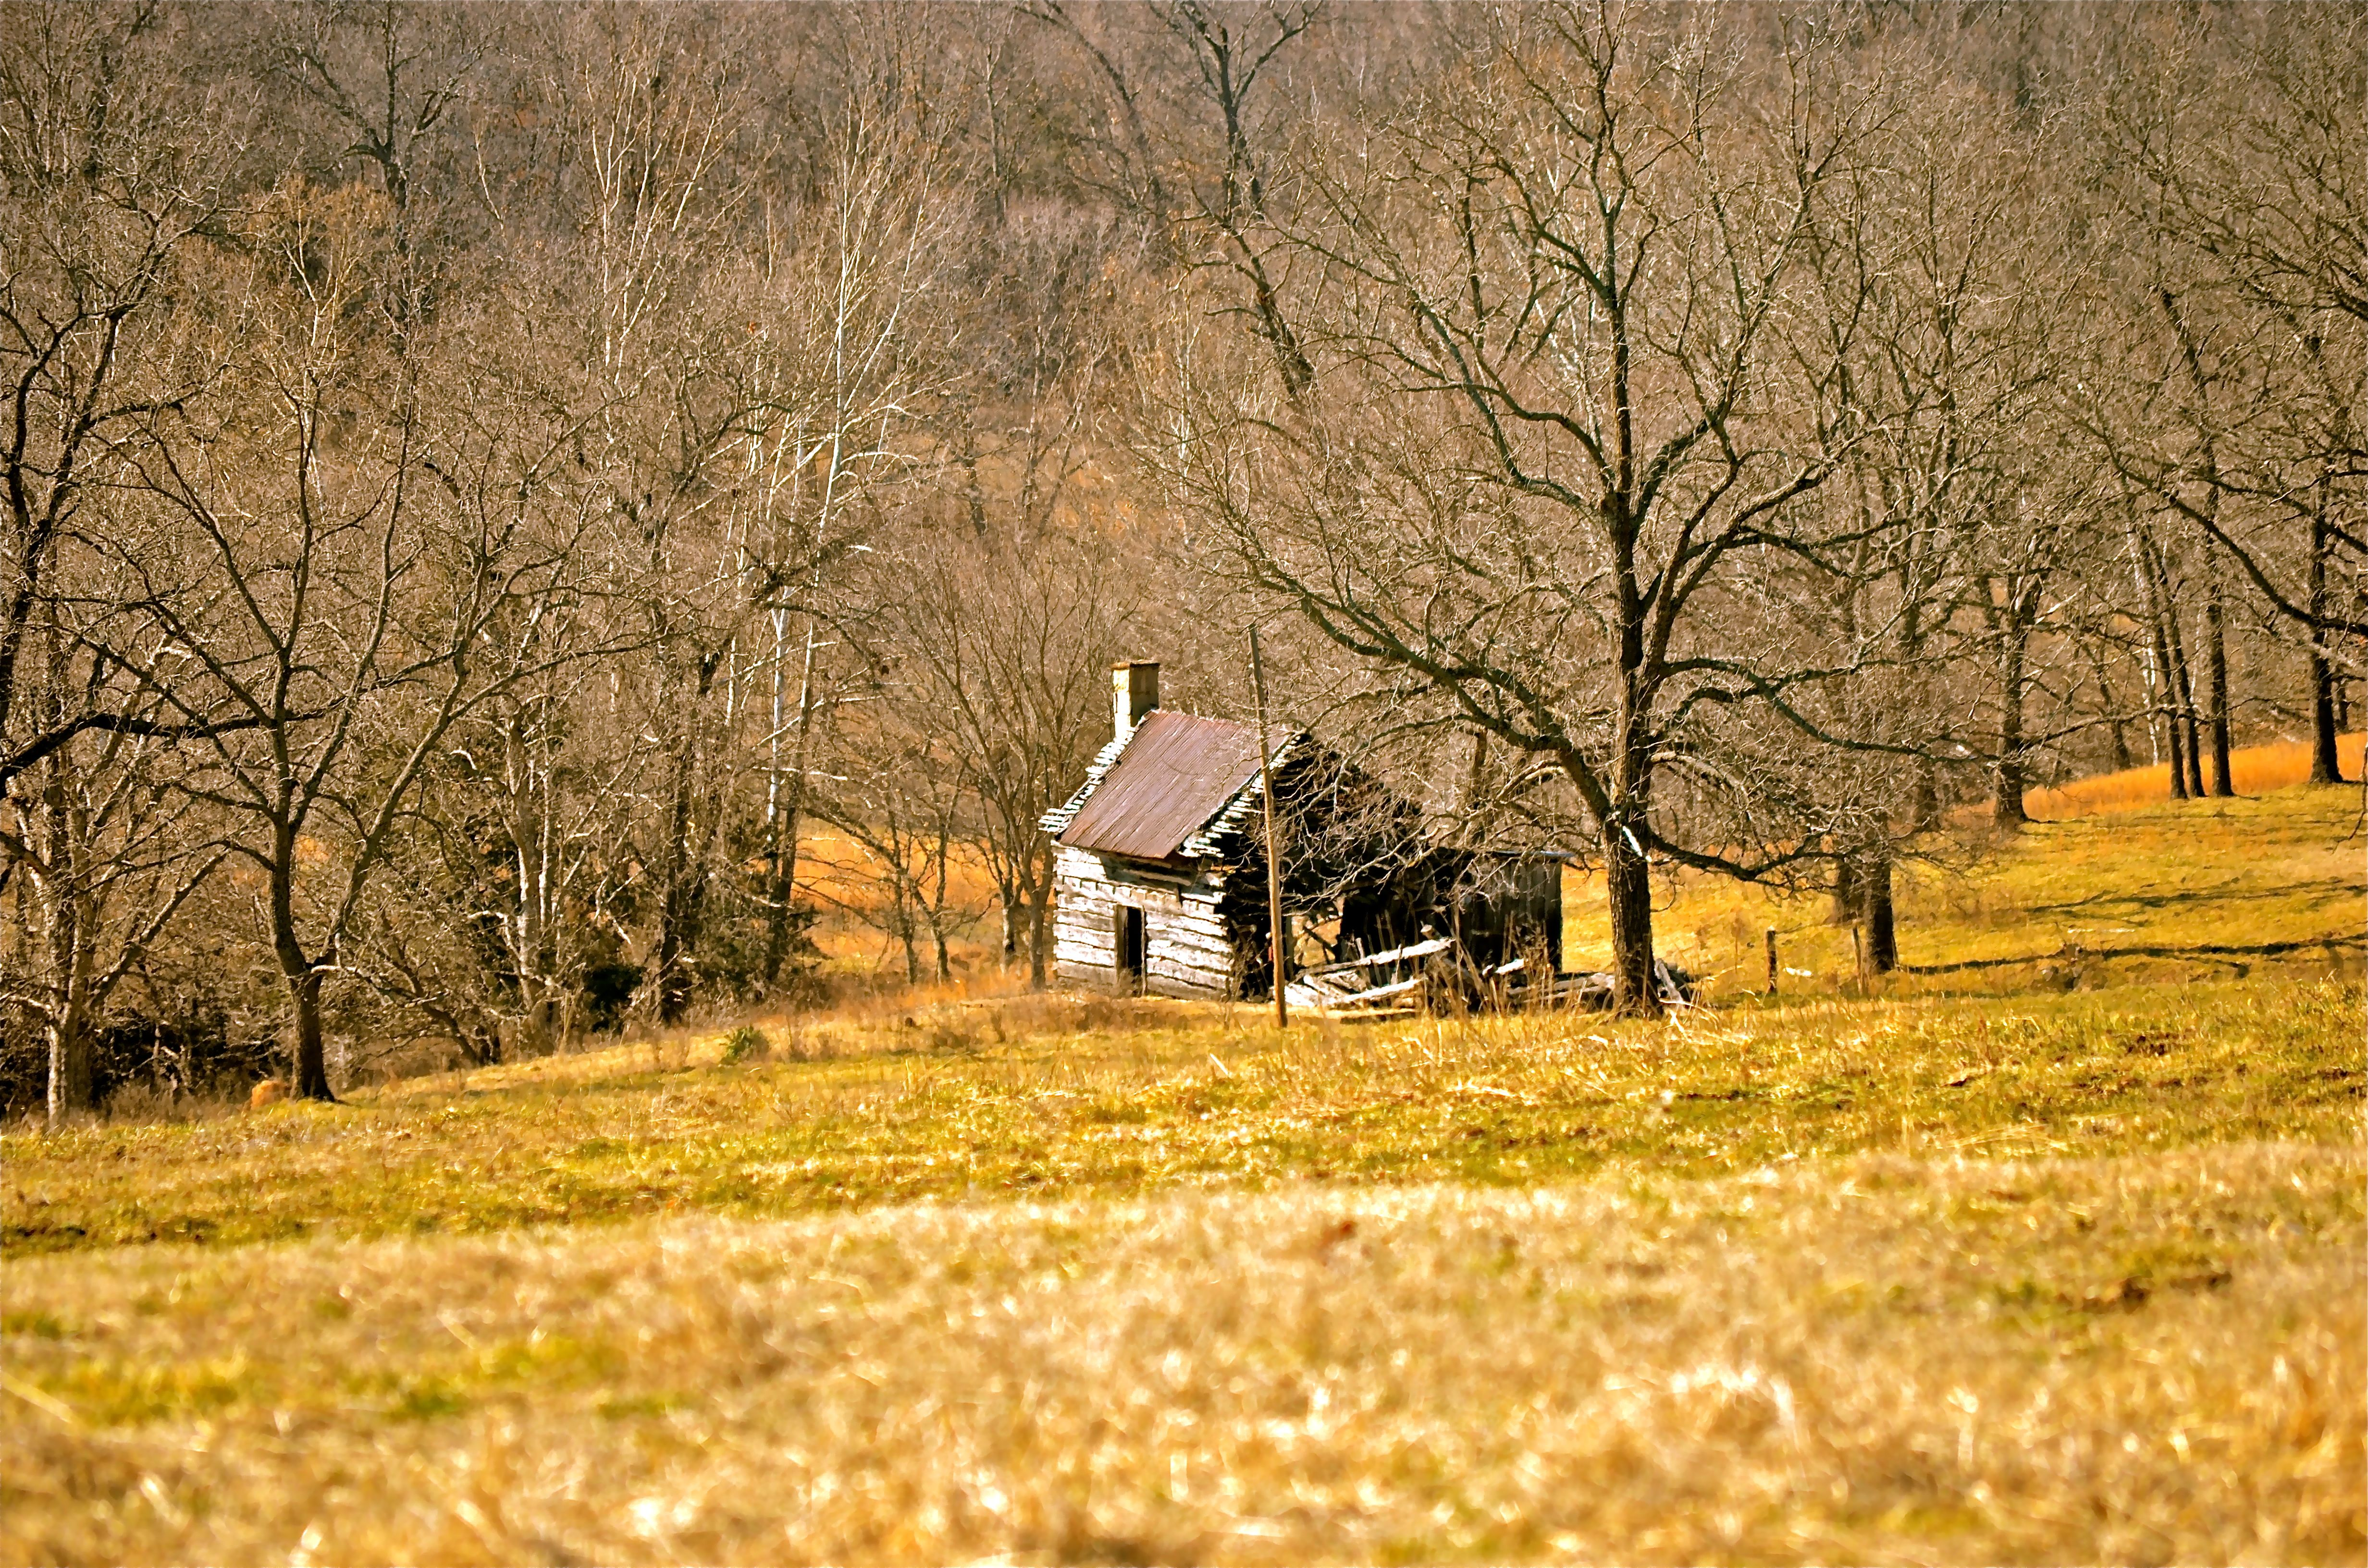 A lonesome old cabin in the Ozark Mountains of Taney